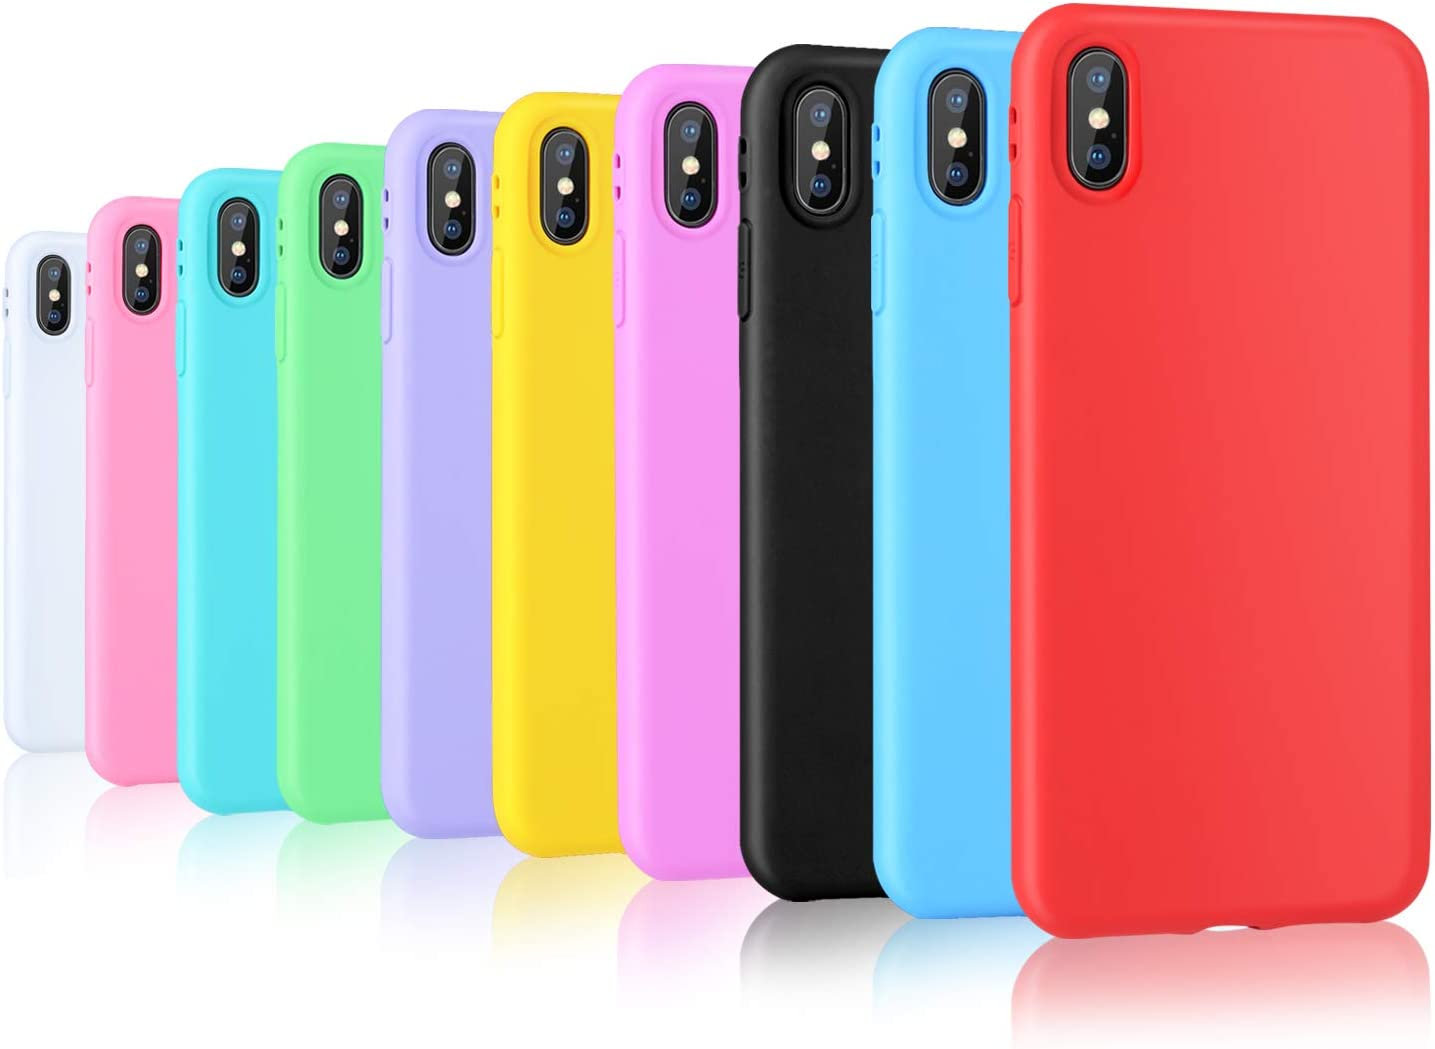 Pofesun iPhone Xs Max Silicone Case, 10 Pack Soft Silicone Gel Rubber Bumper Phone Case Shockproof Full-Body Protective Case Cover Compatible for iPhone Xs Max 6.5 inch(2018)